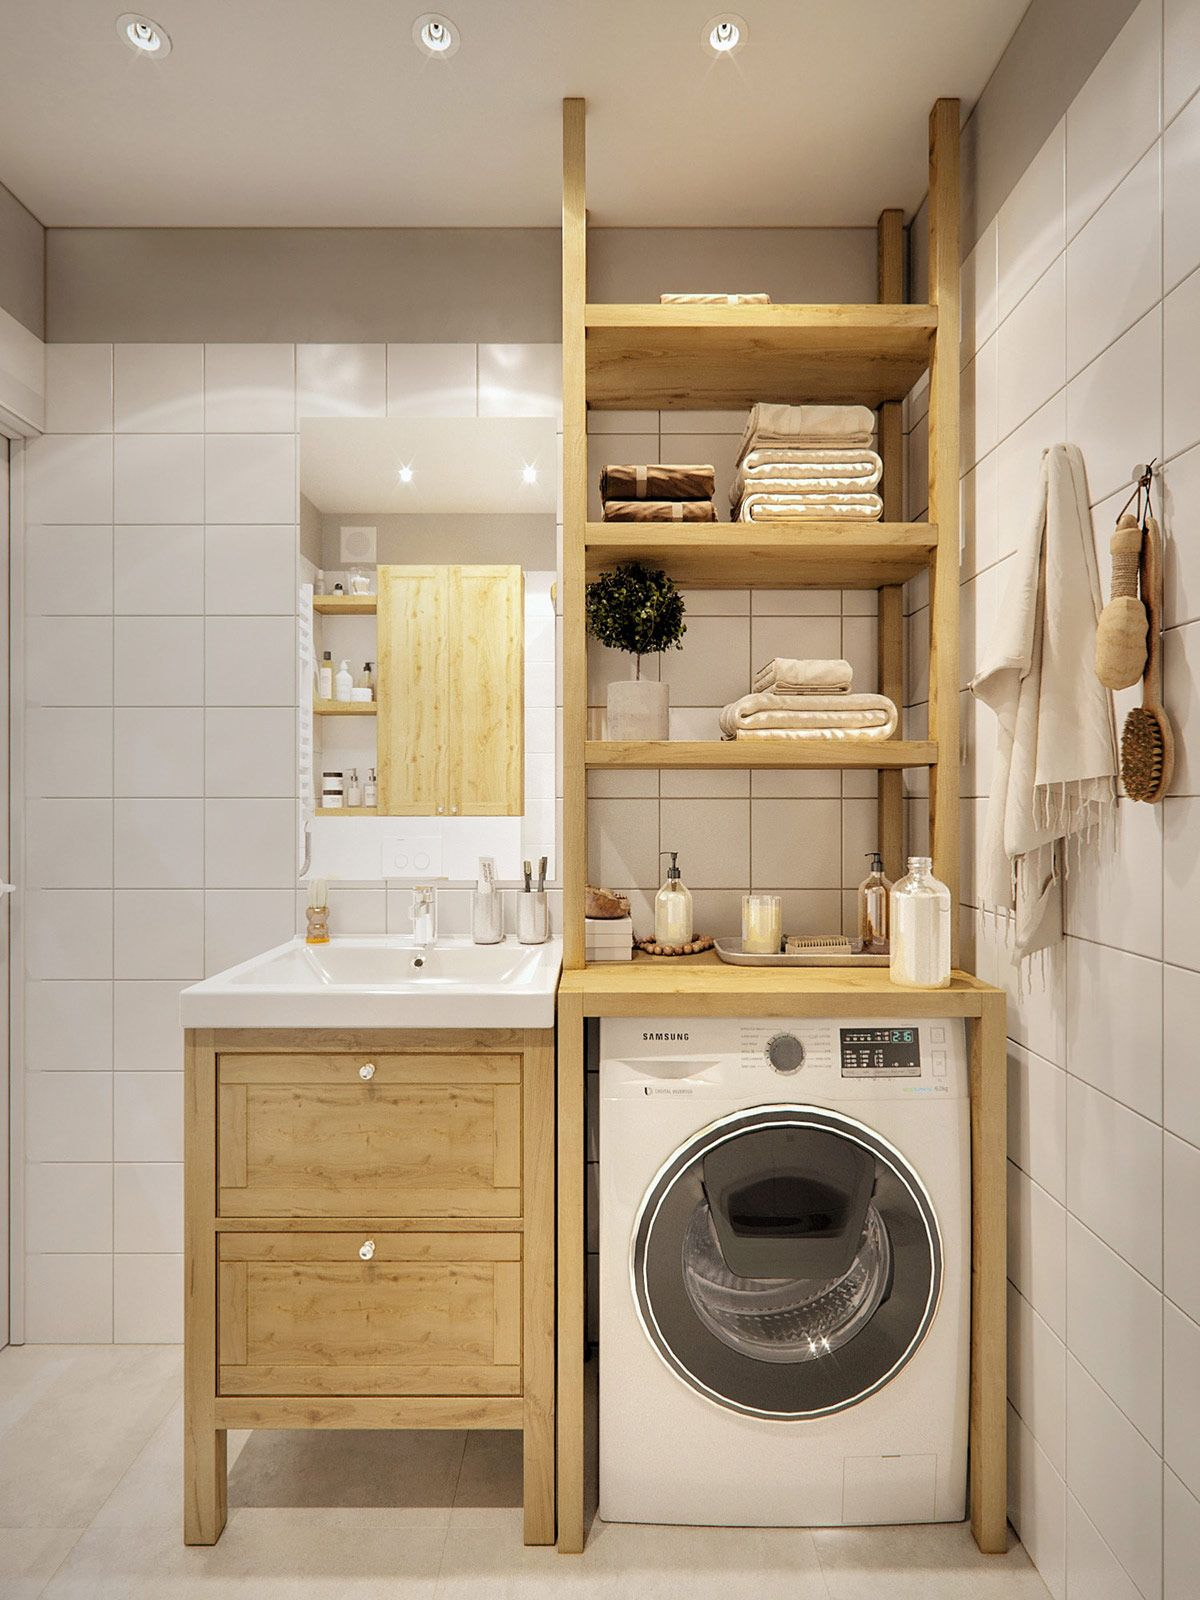 Managing With Less 3 Small Homes Under 40 Square Meters 430 Square Feet In 2020 Laundry In Bathroom Laundry Room Design Bathroom Design